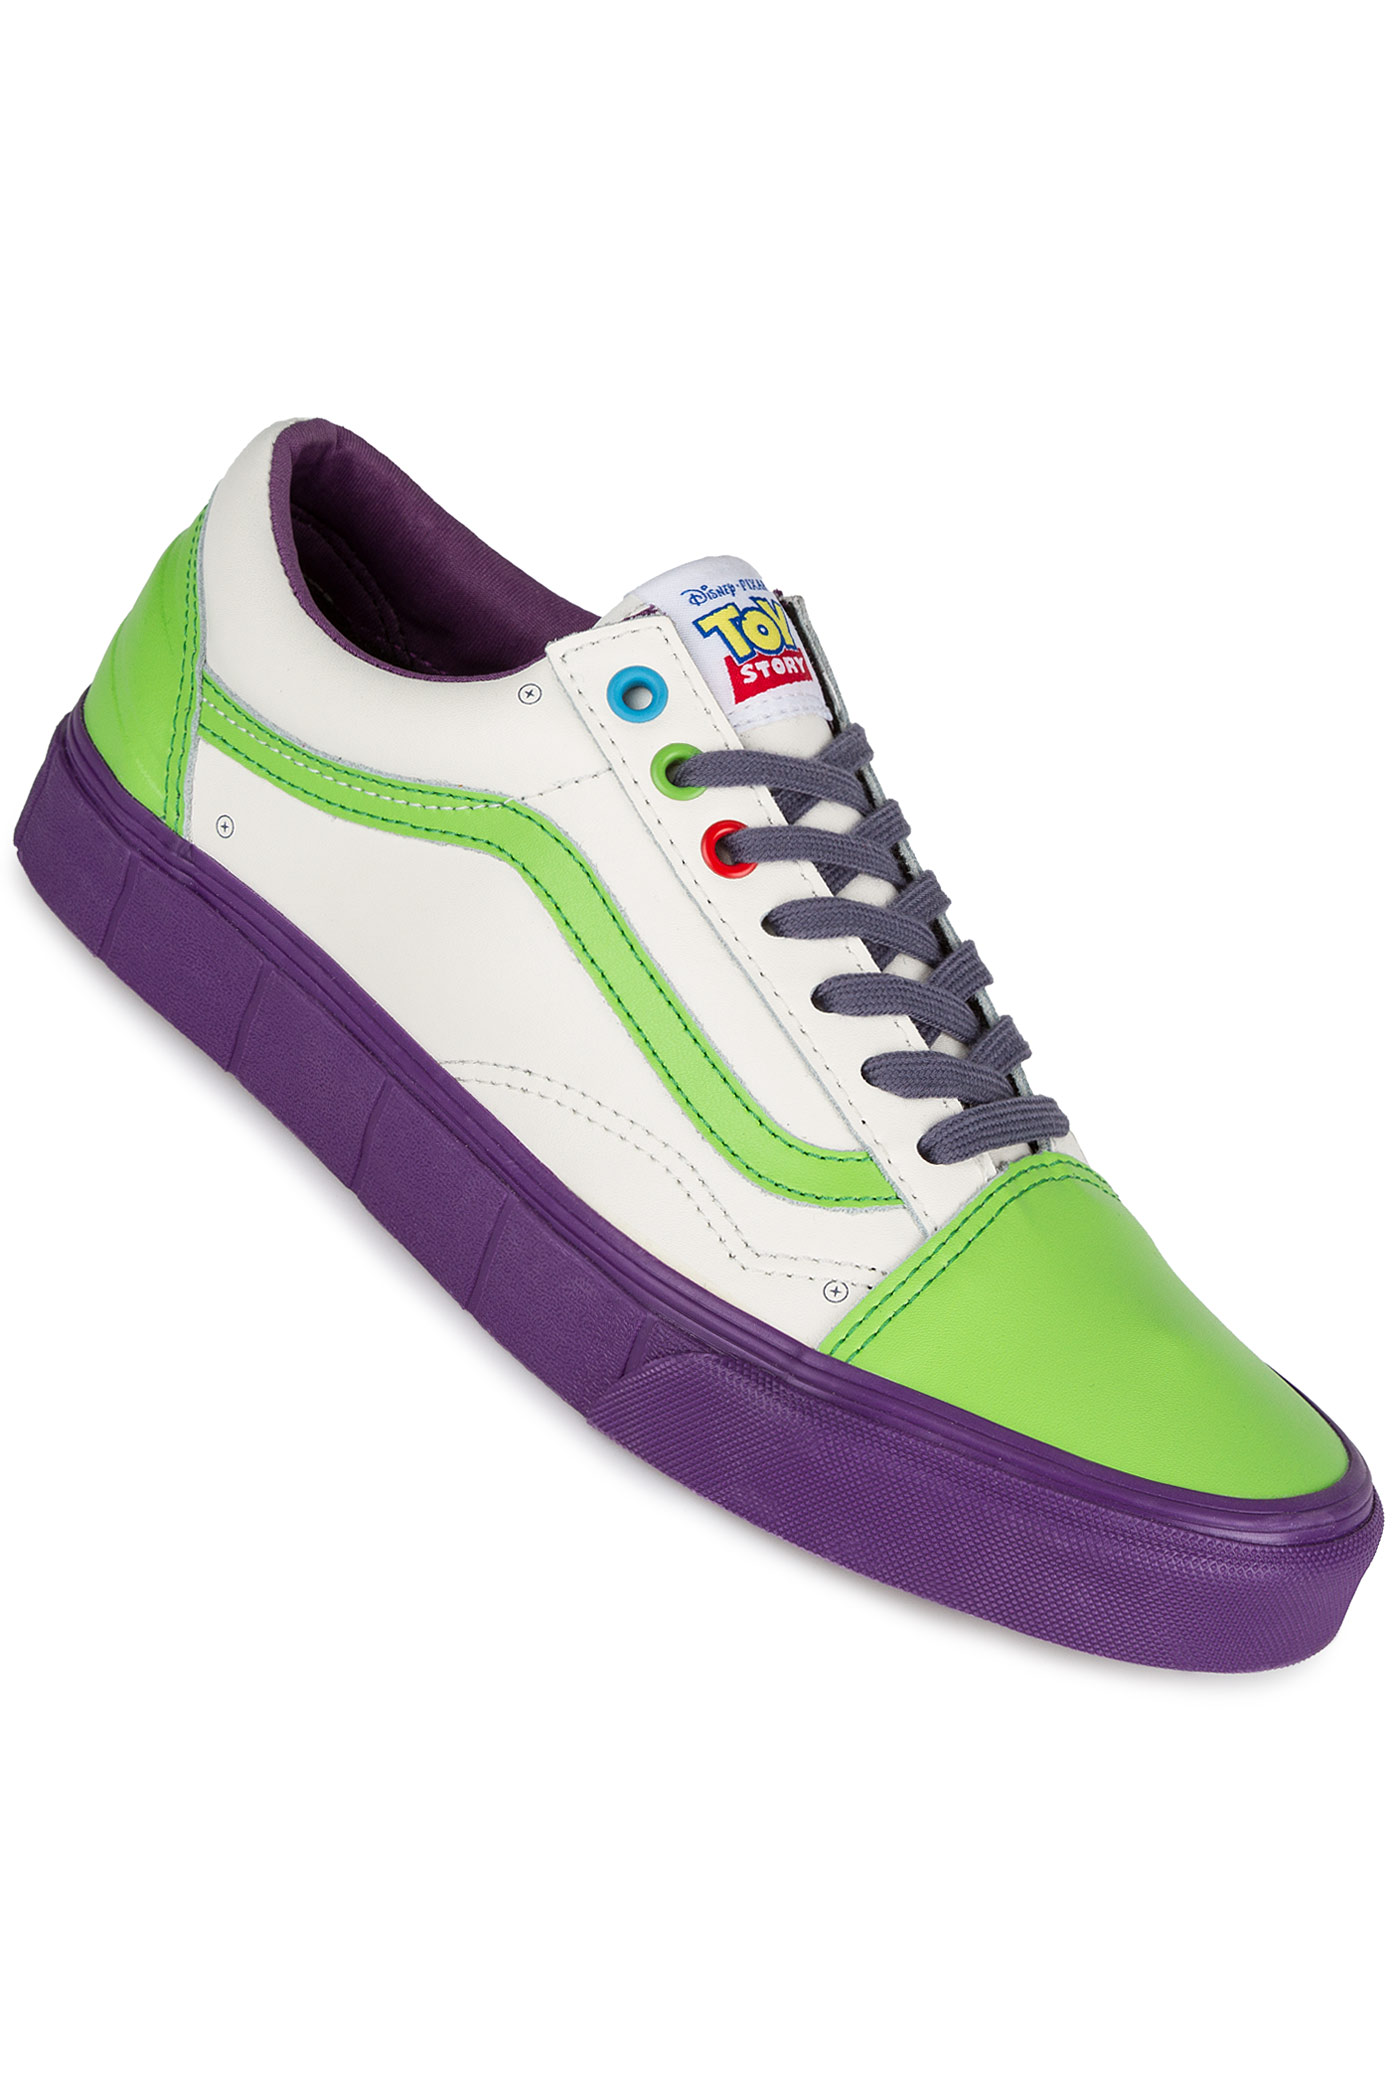 Vans Buzz Lightyear Shoes